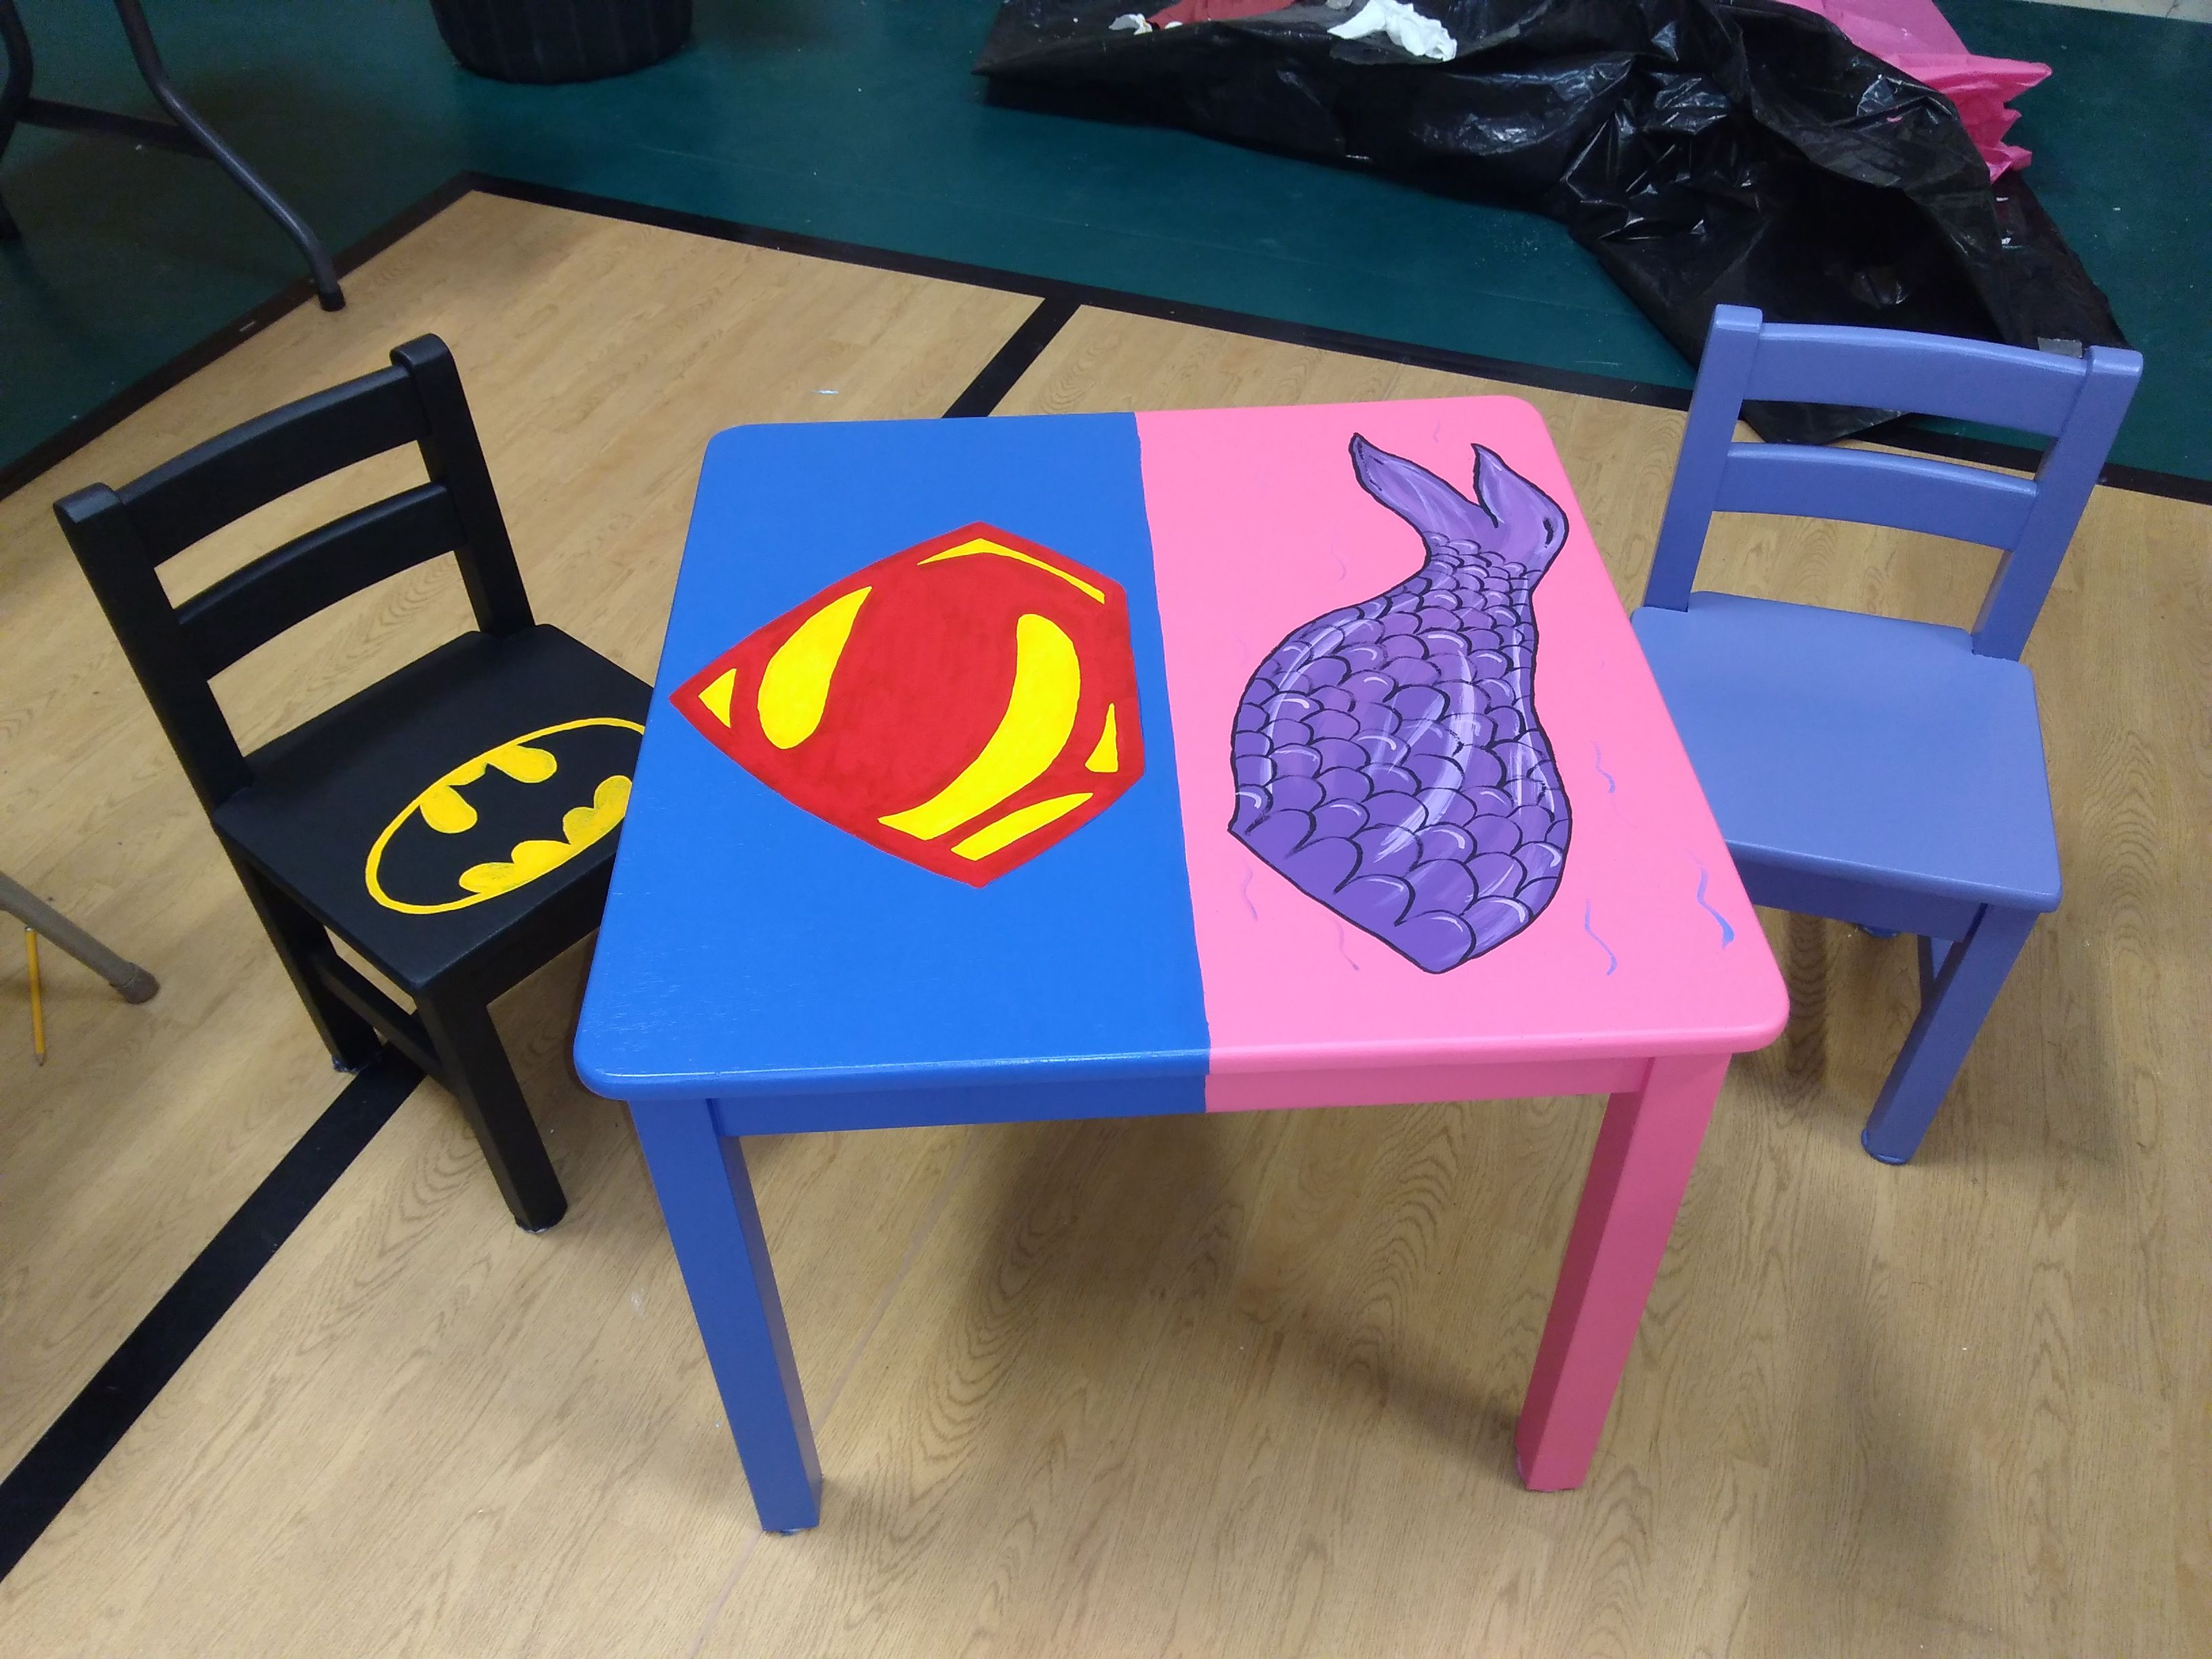 Batman Childrens Table And Chairs Evenflo Compact High Chair Superman Mermaids Kids Toys